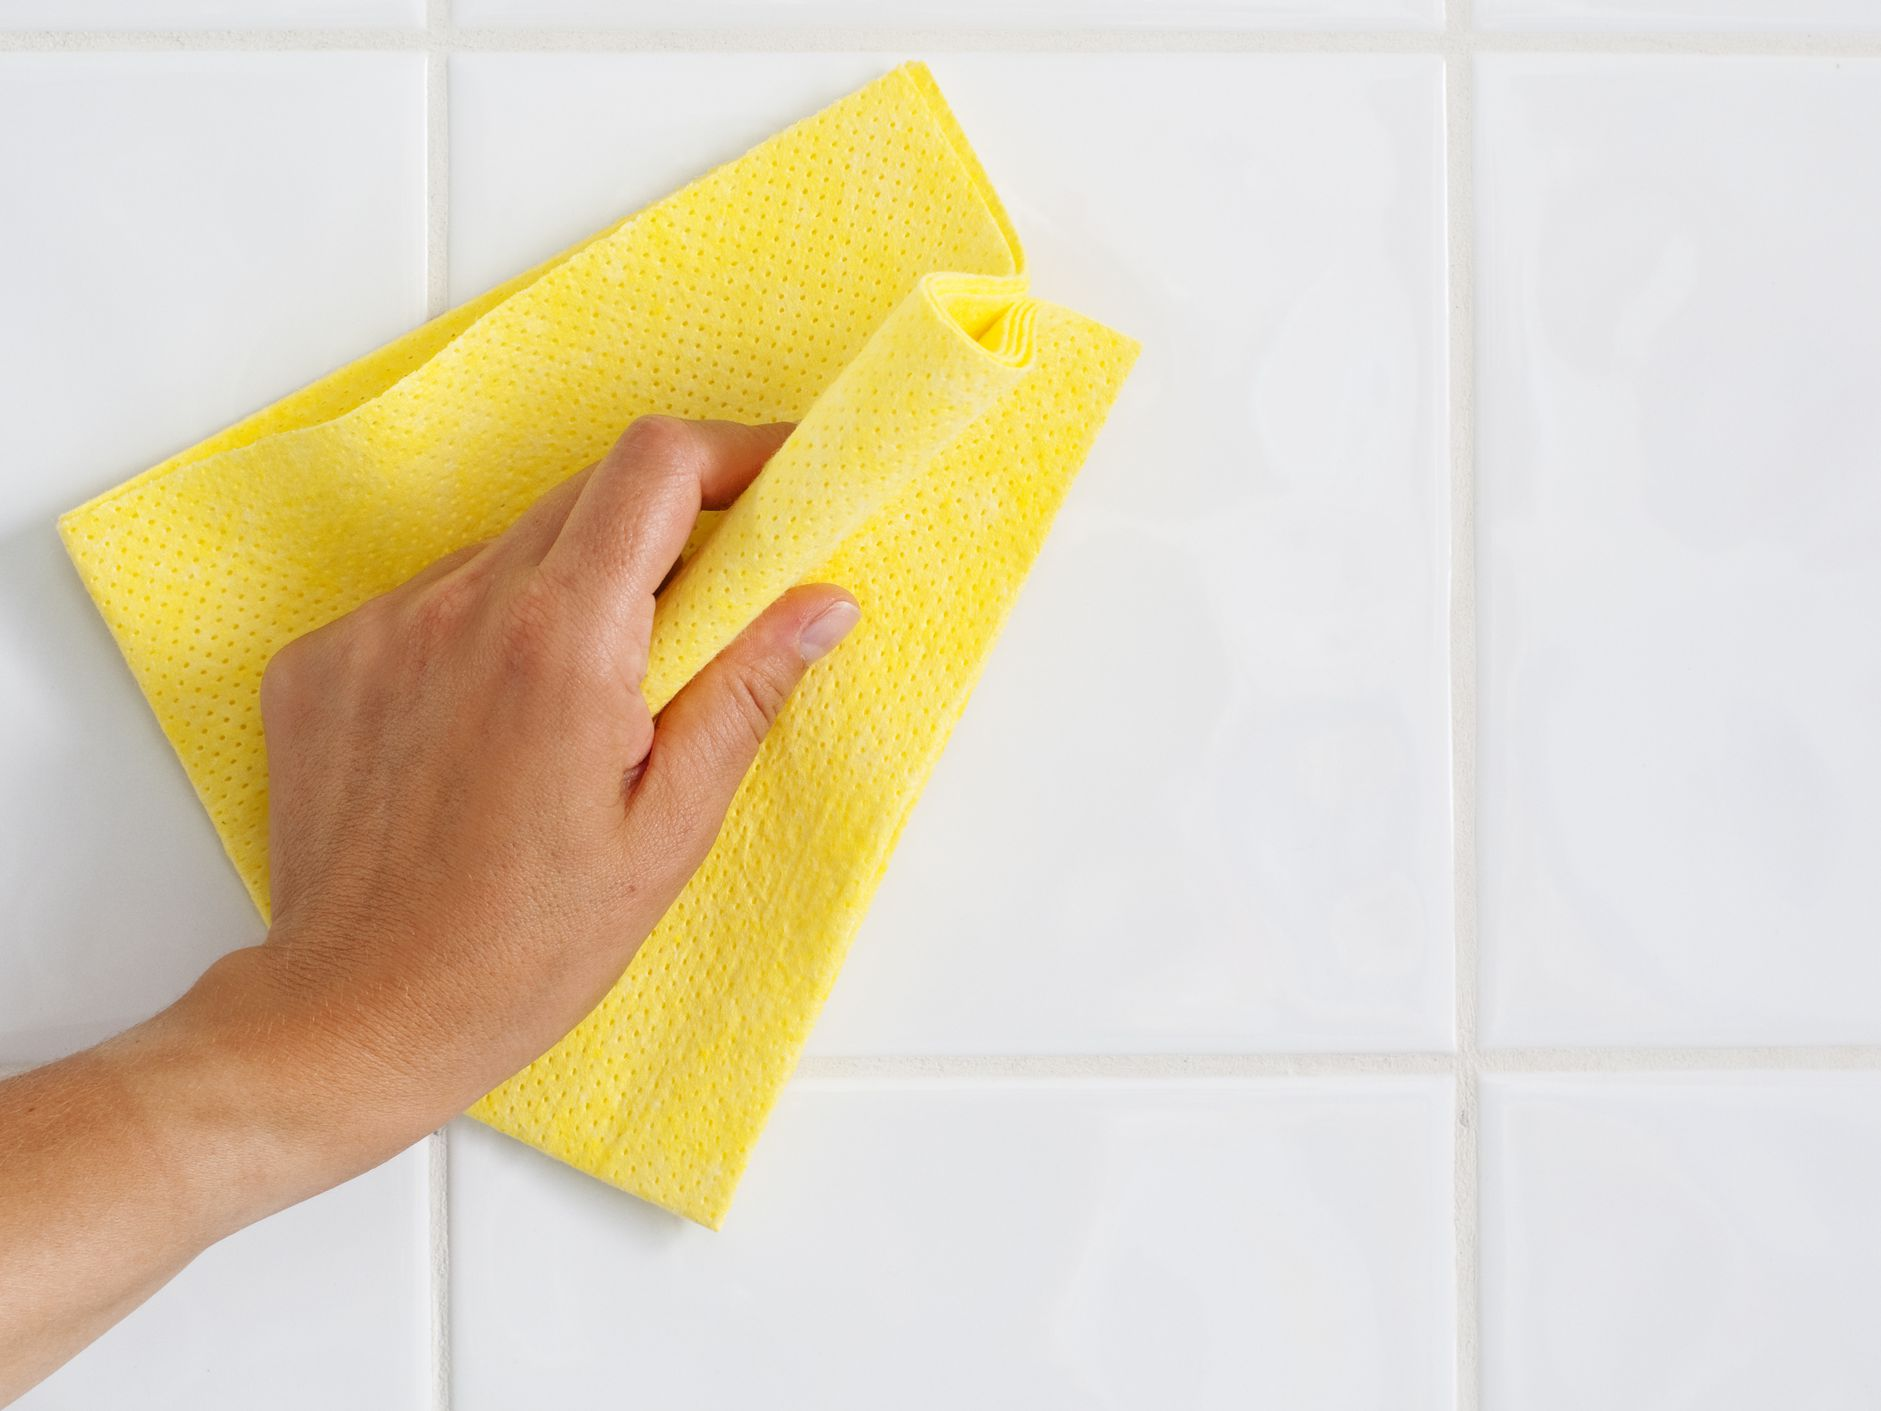 Best Mold-Busting Tips for Lazy Cleaners